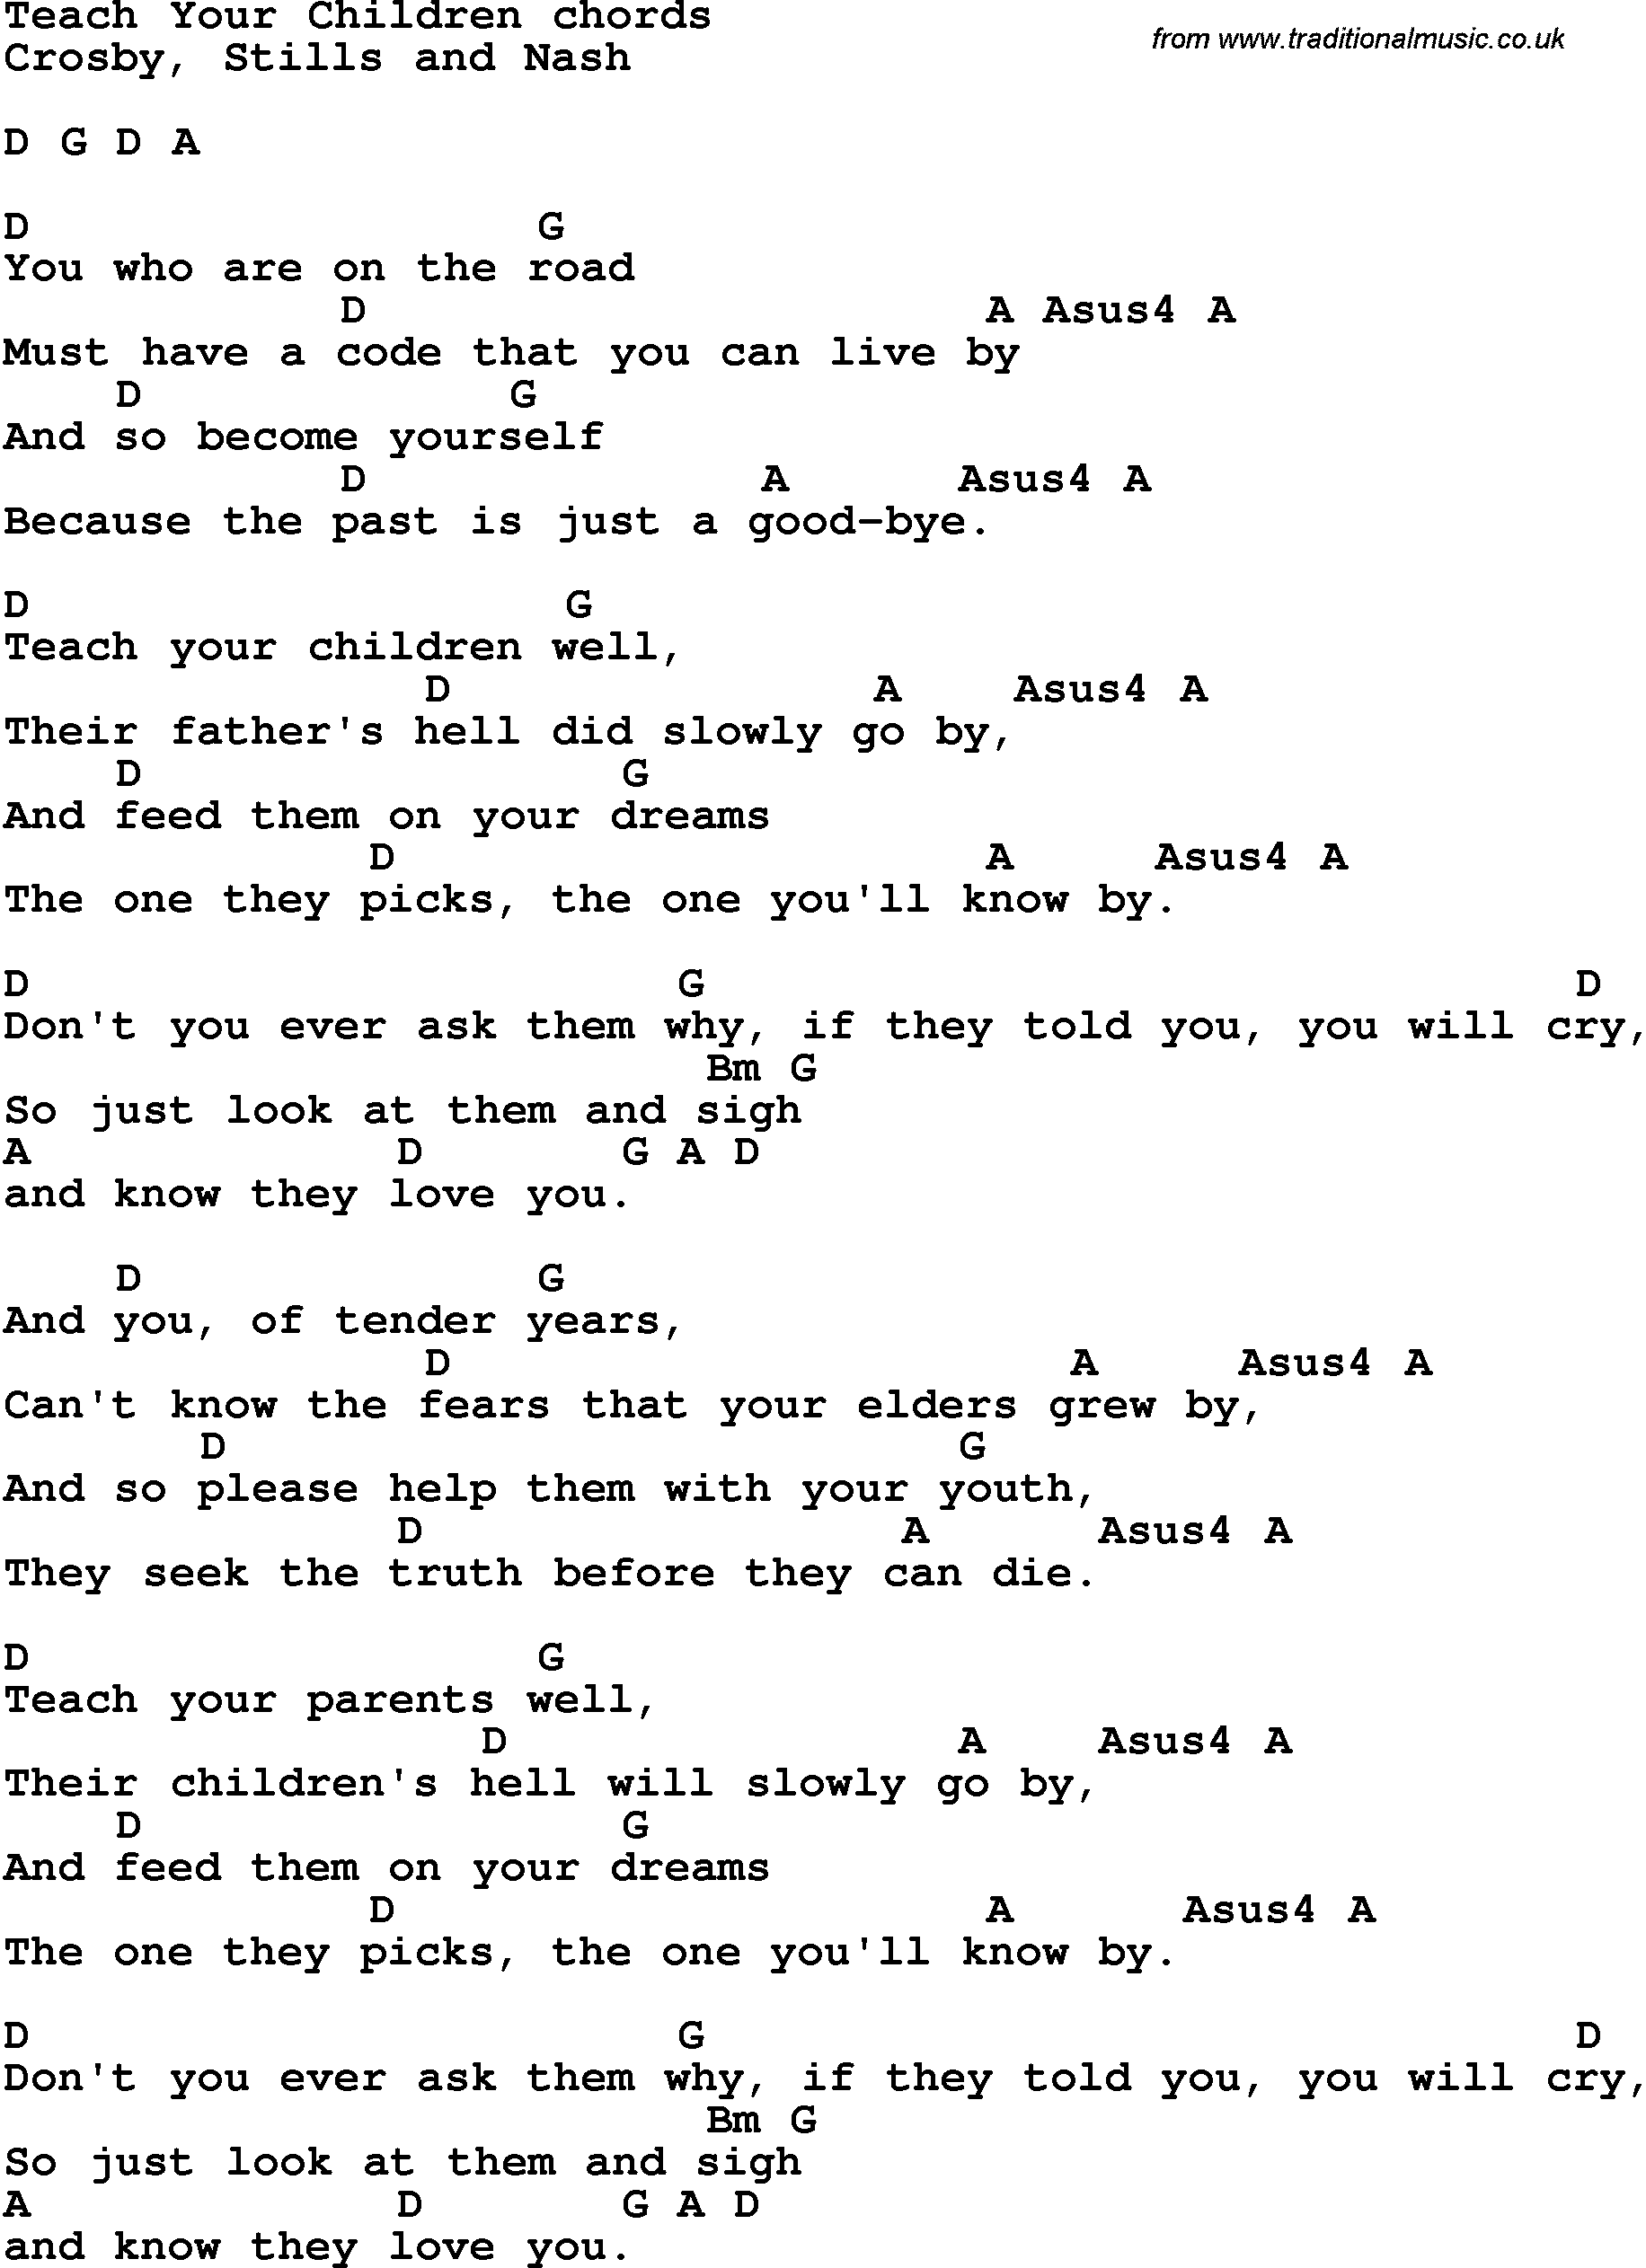 Song Lyrics With Guitar Chords For Teach Your Children